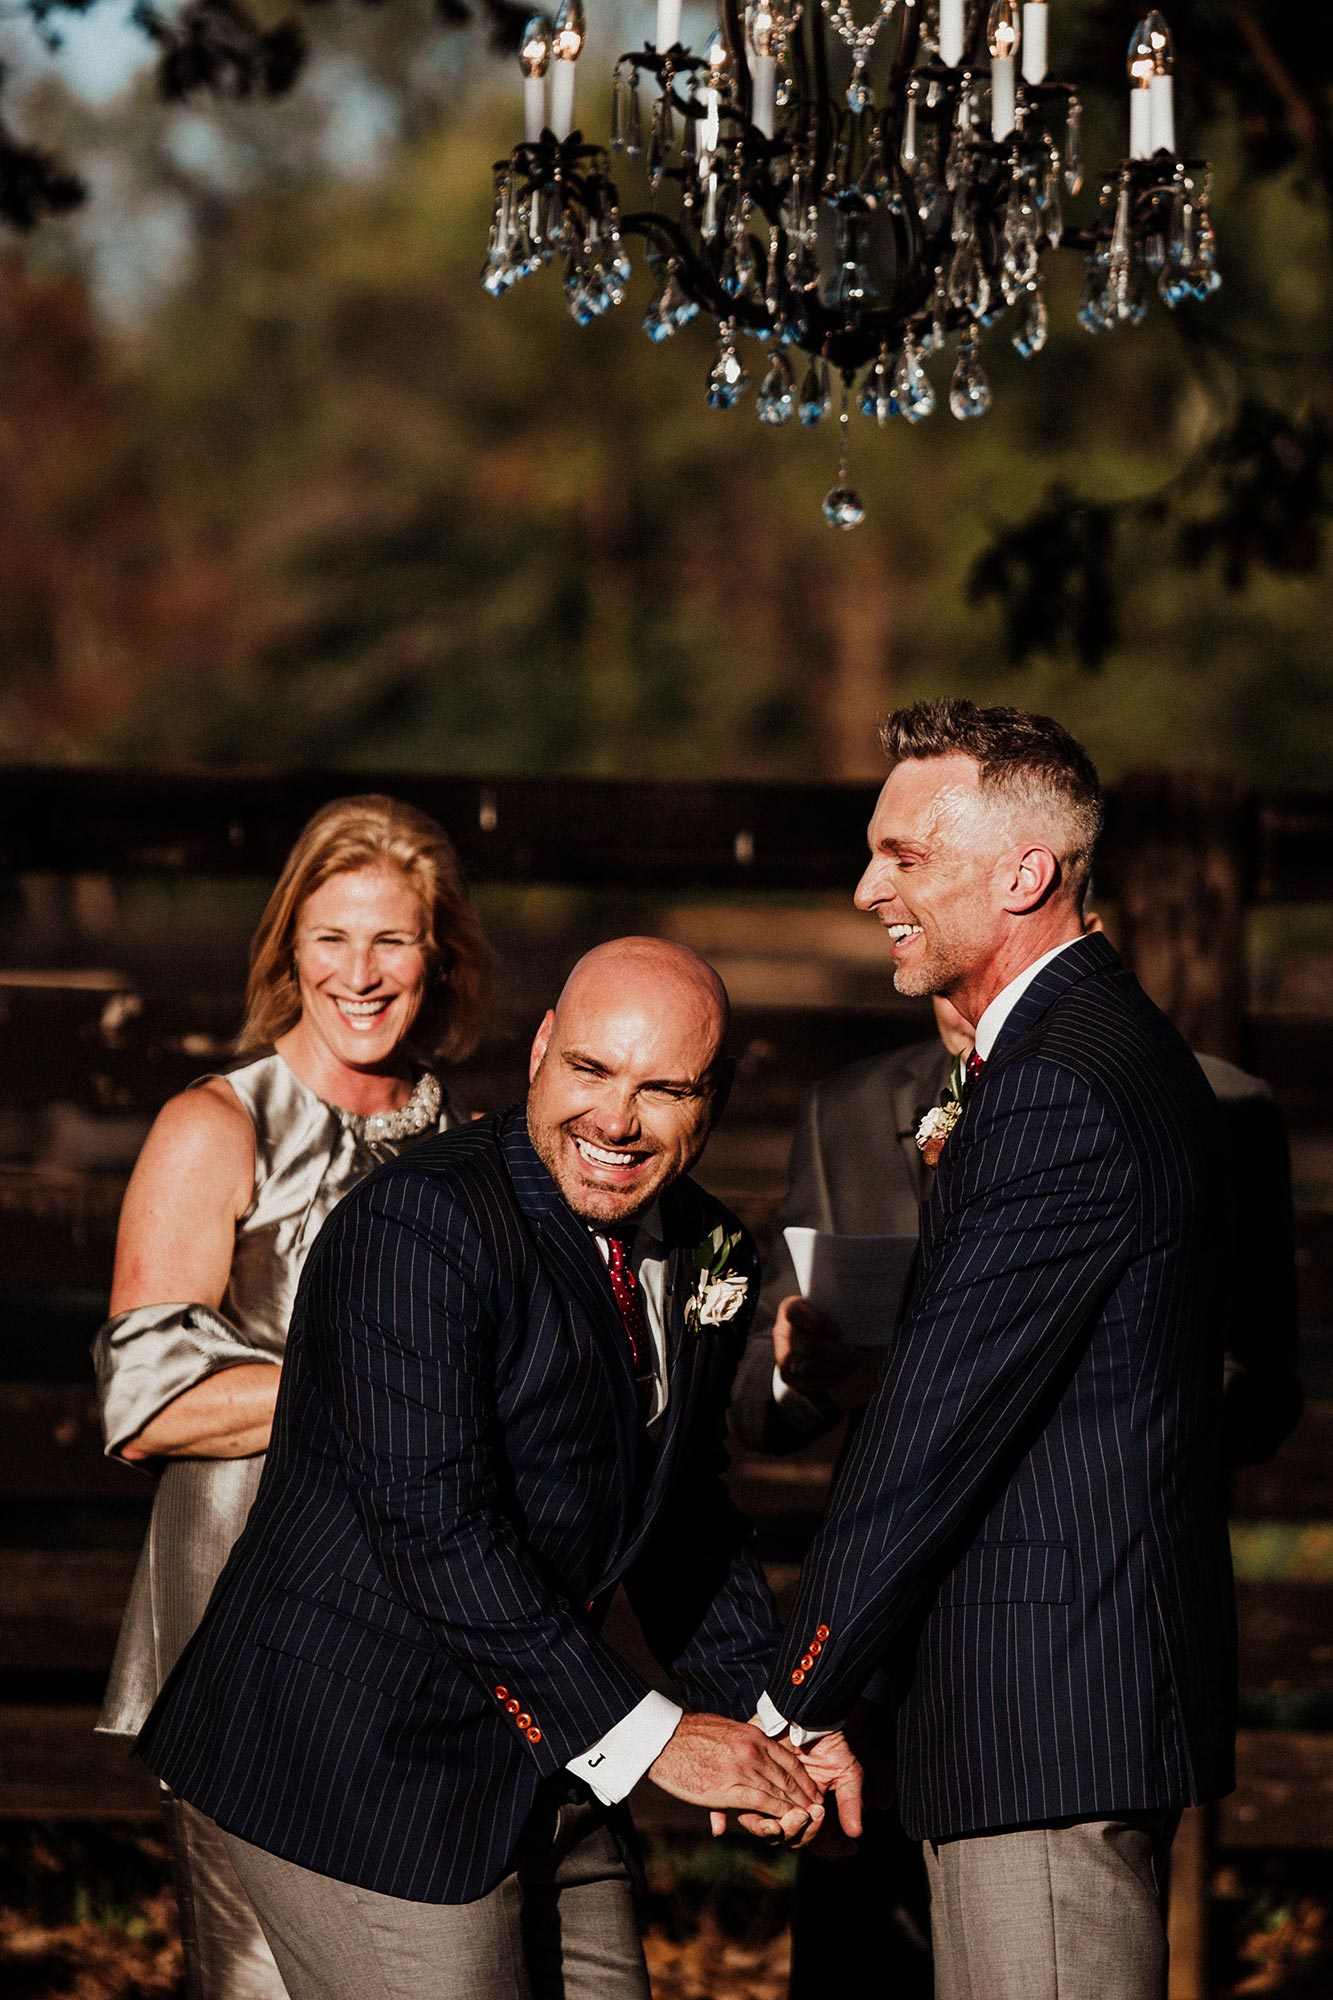 LGBTQ Louisville Kentucky Wedding at Hermitage Farm Crystal Ludwick Photo grooms laughing and holding hands during ceremony